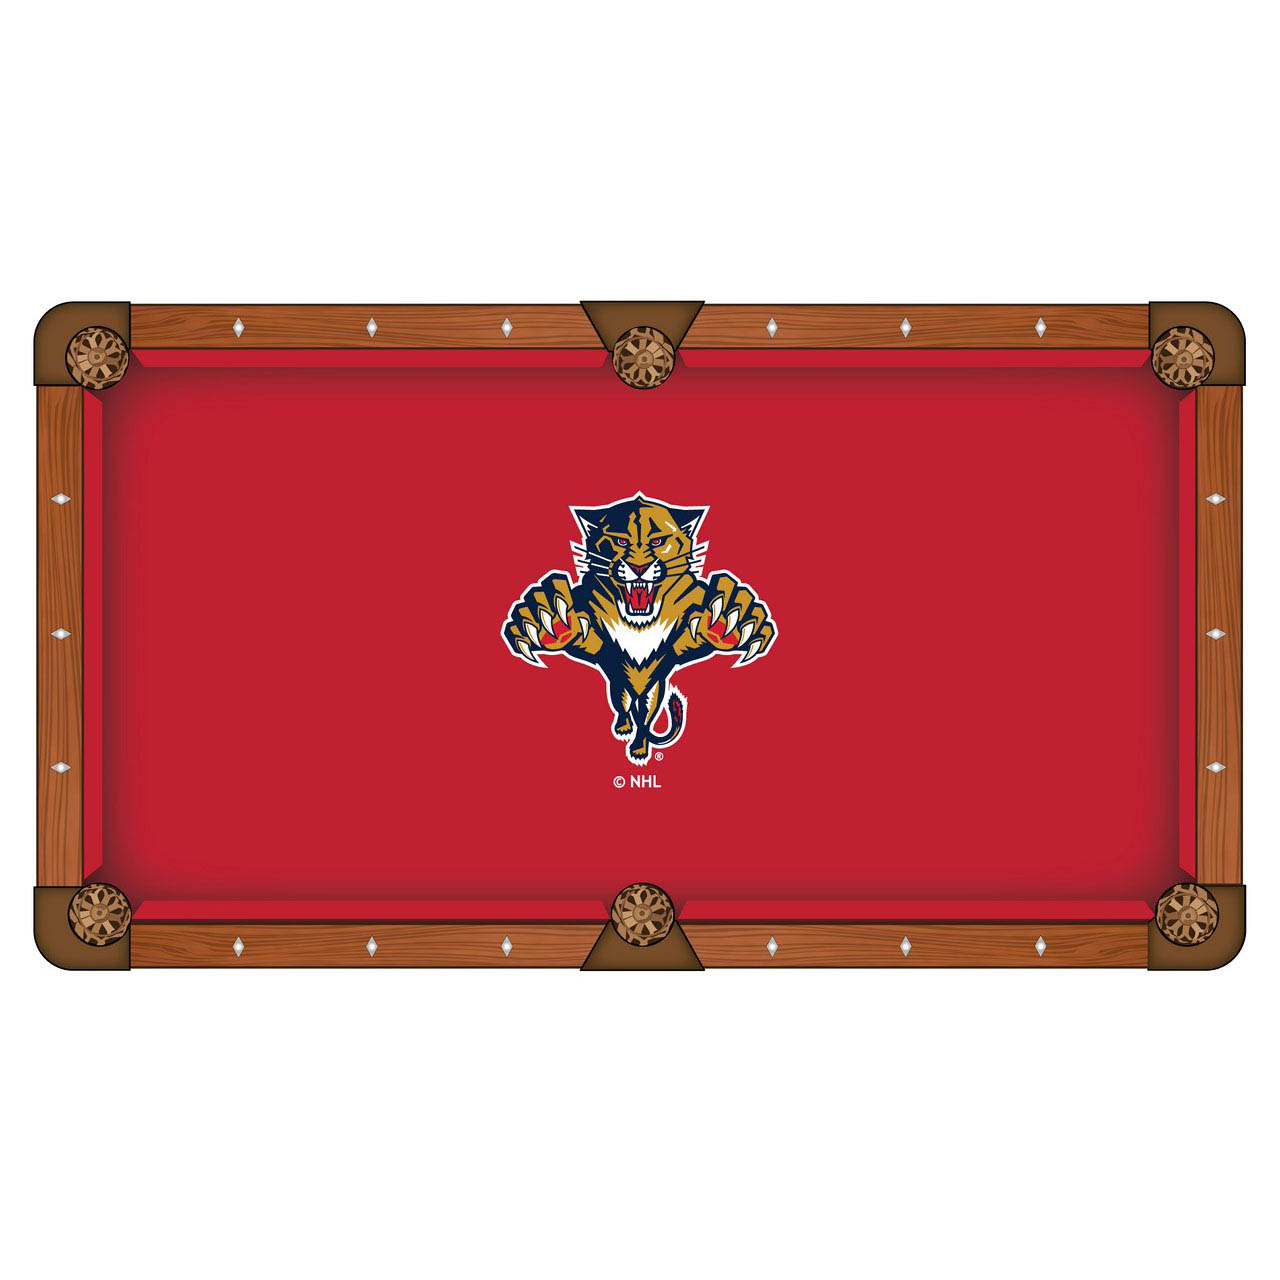 Magnificent Florida Panthers Pool Table Cloth Product Photo